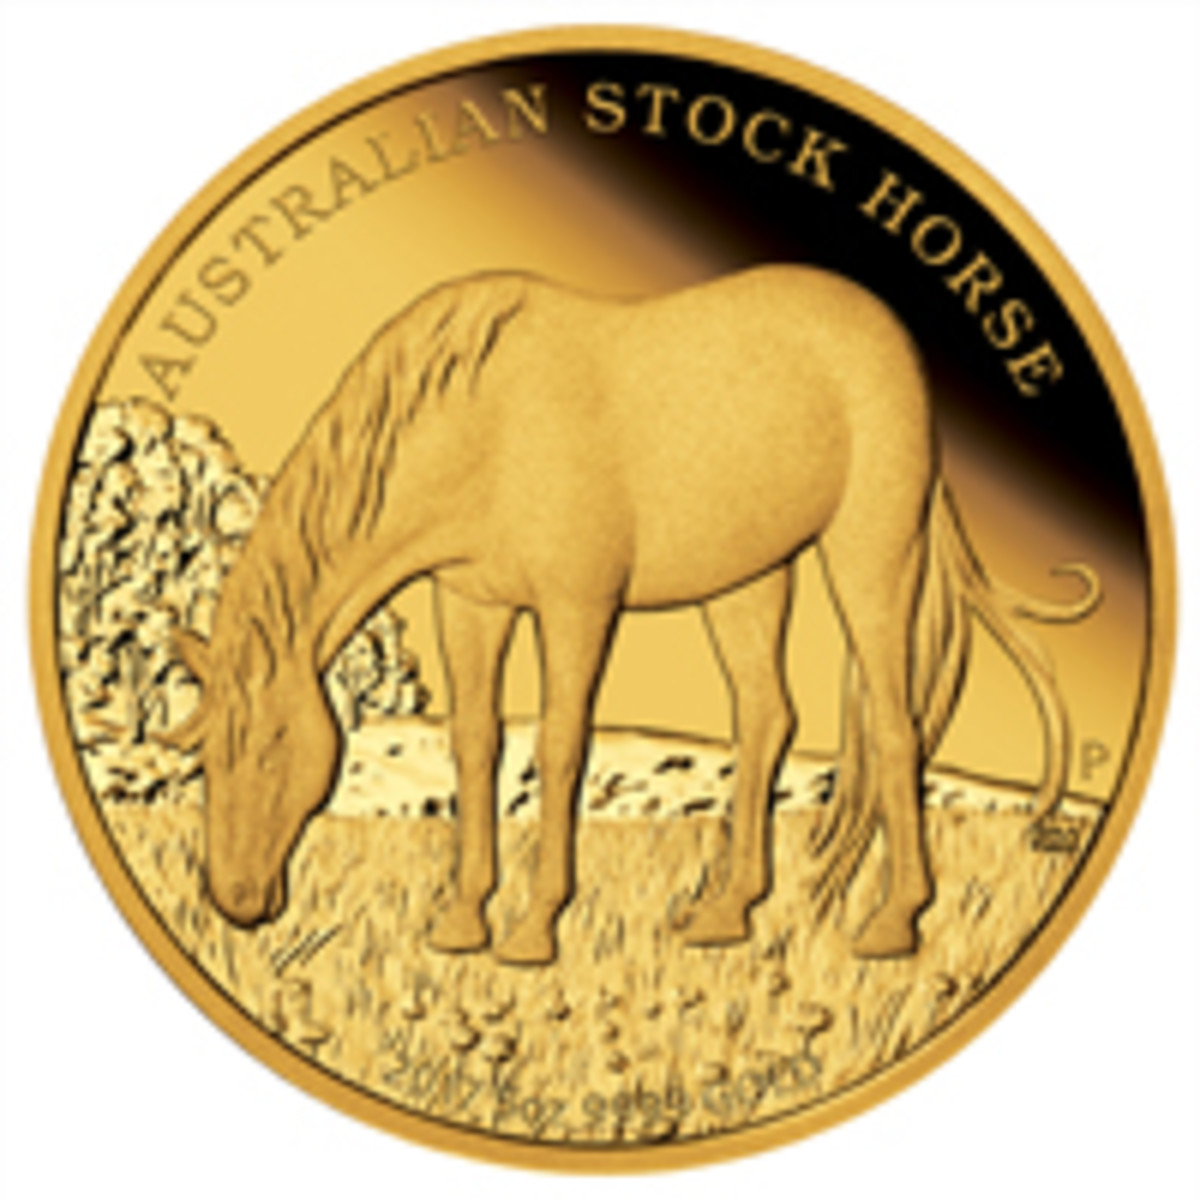 Natasha Muhl's design for this year's five-ounce gold $500 proof celebrating the Australia's Stock Horse. (Image courtesy The Perth Mint)